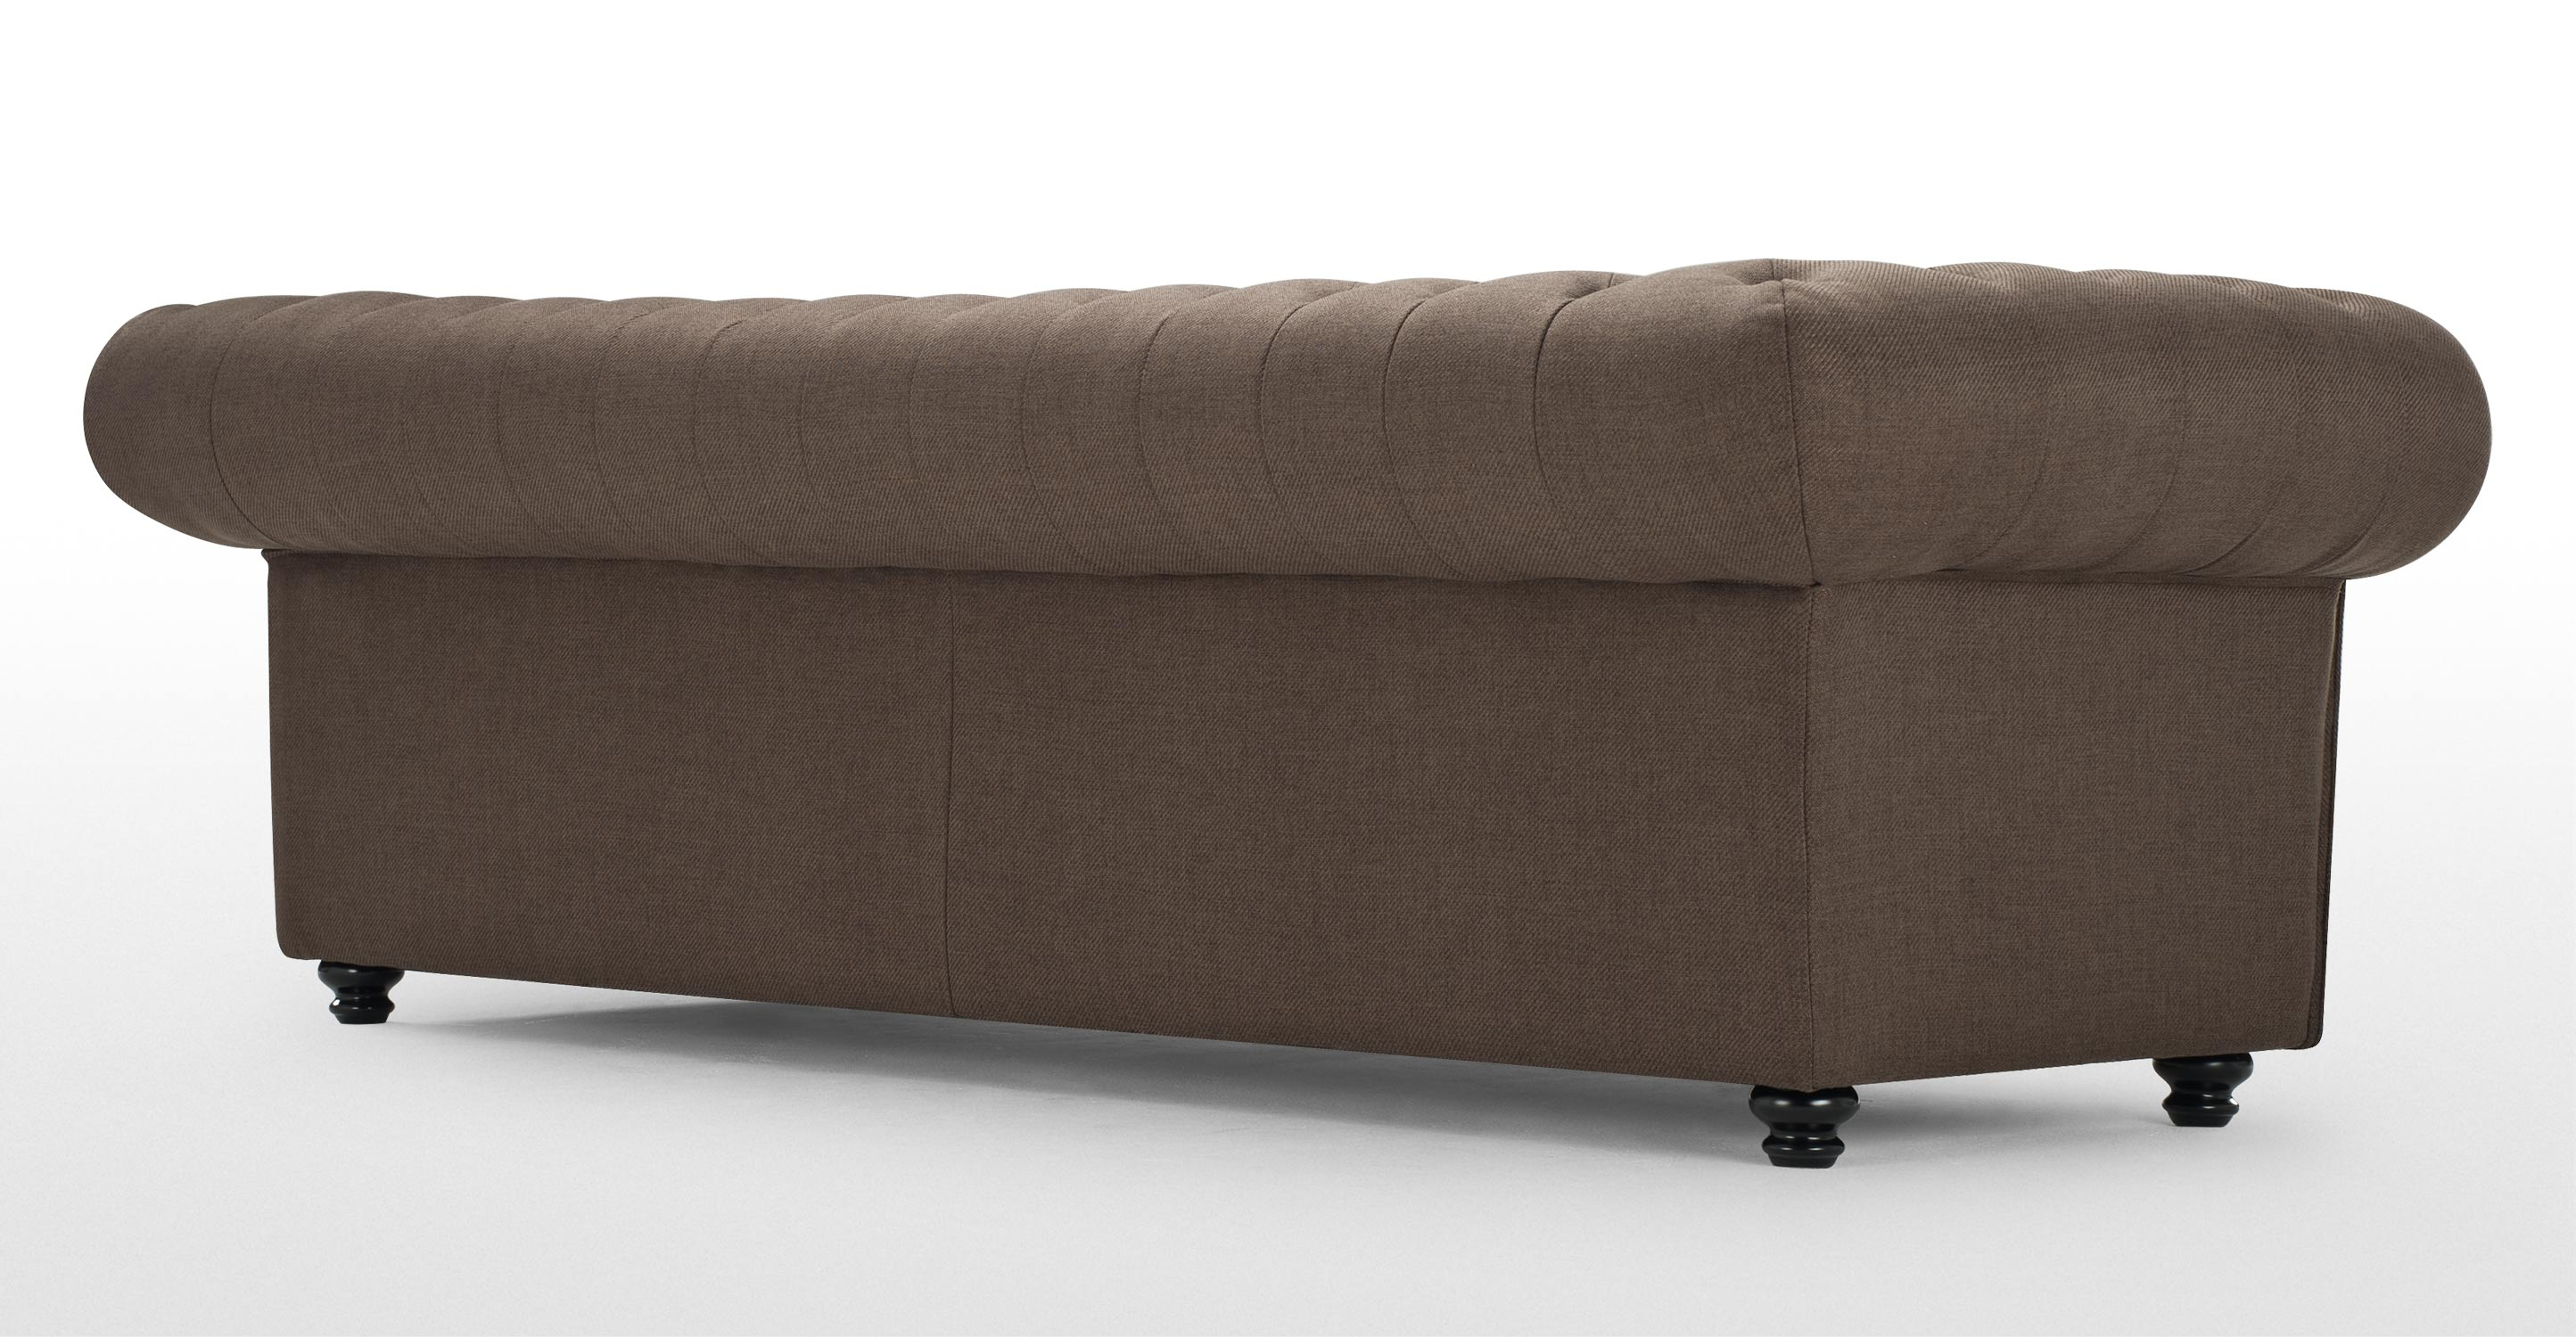 Branagh 3 Seater Brown Chesterfield Sofa made com